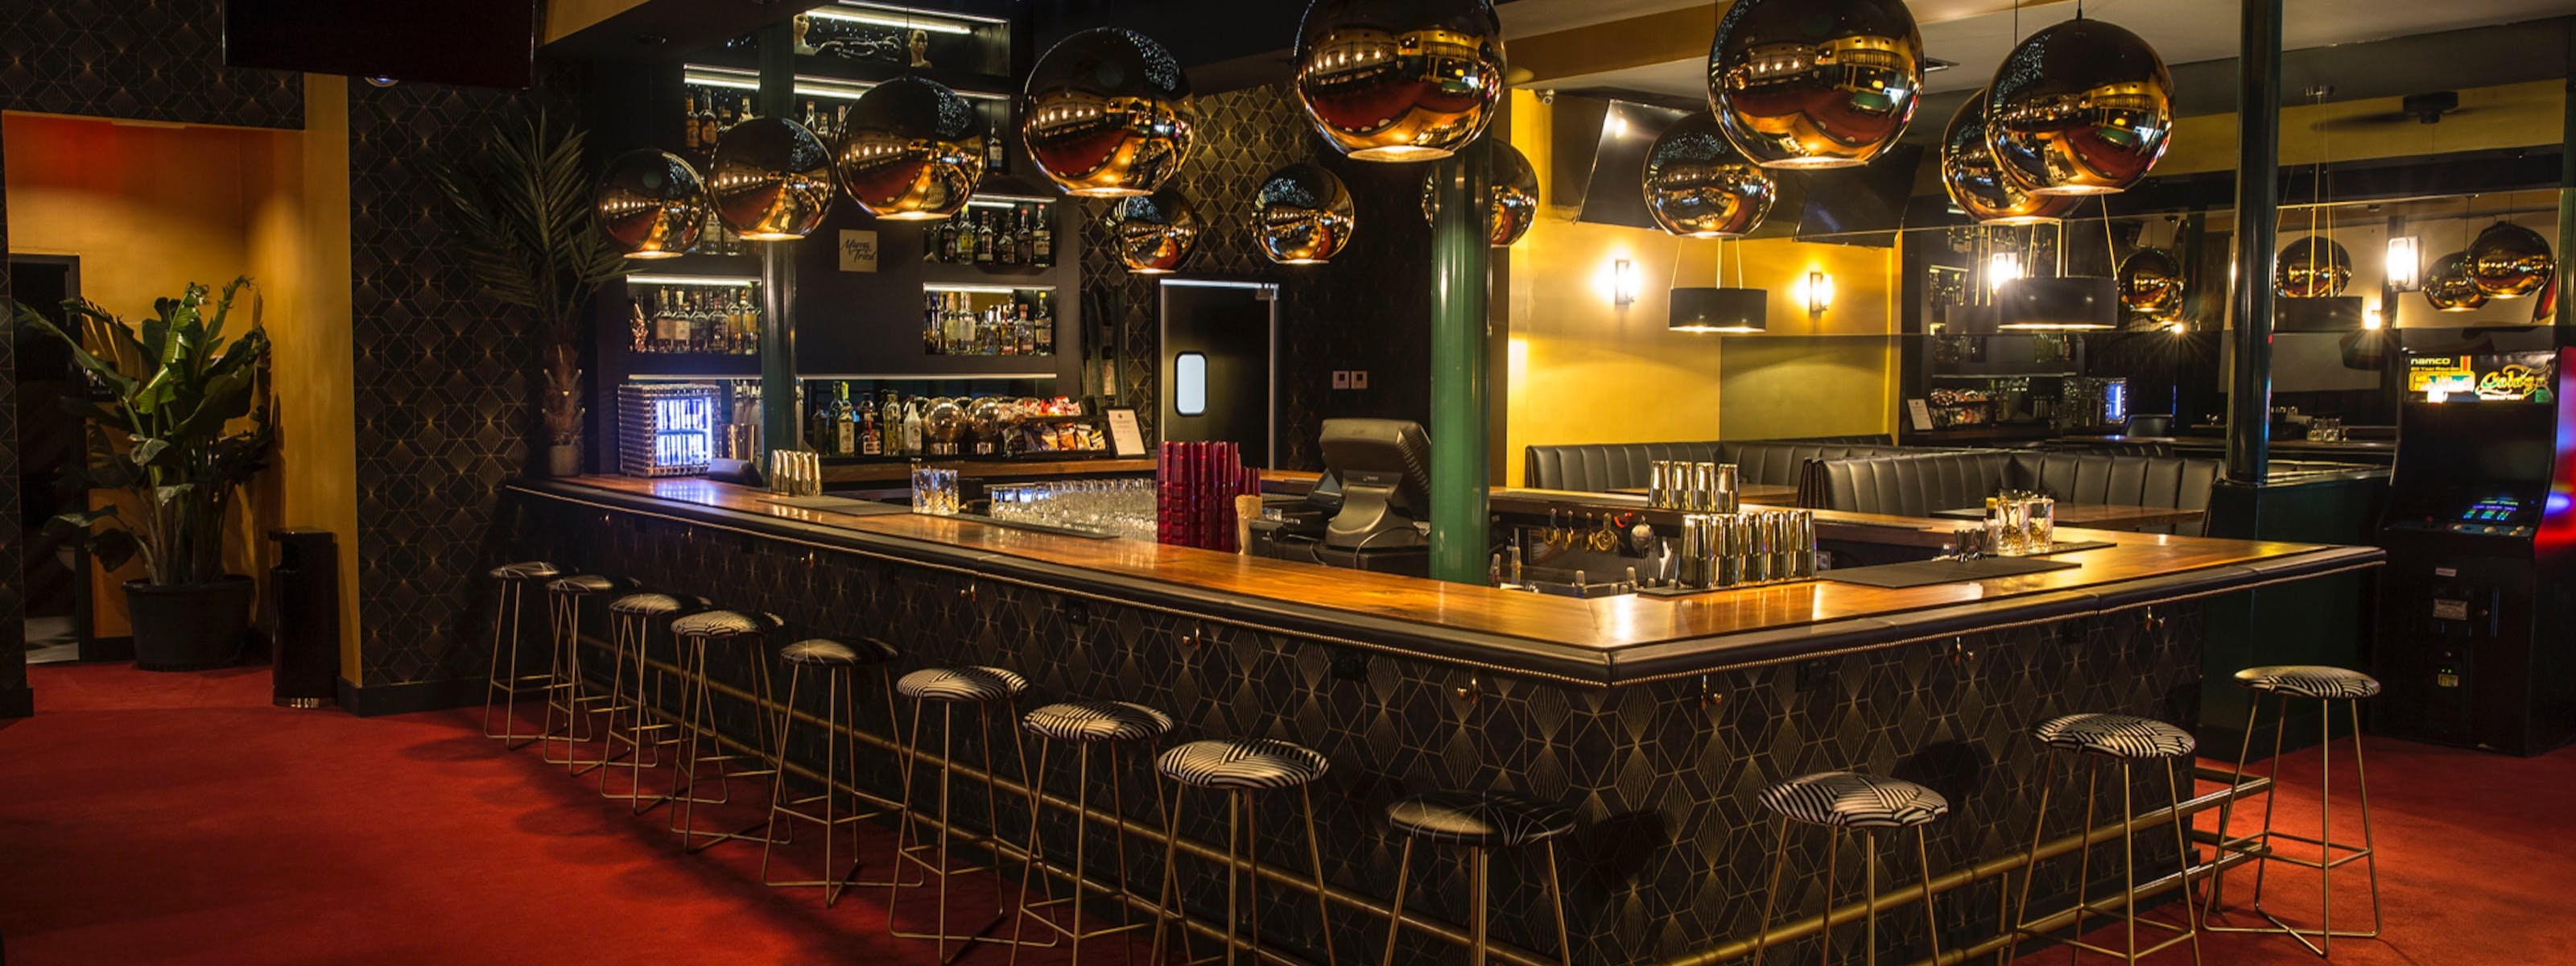 The Best Bars in Downtown and Brickell - Miami - The Infatuation